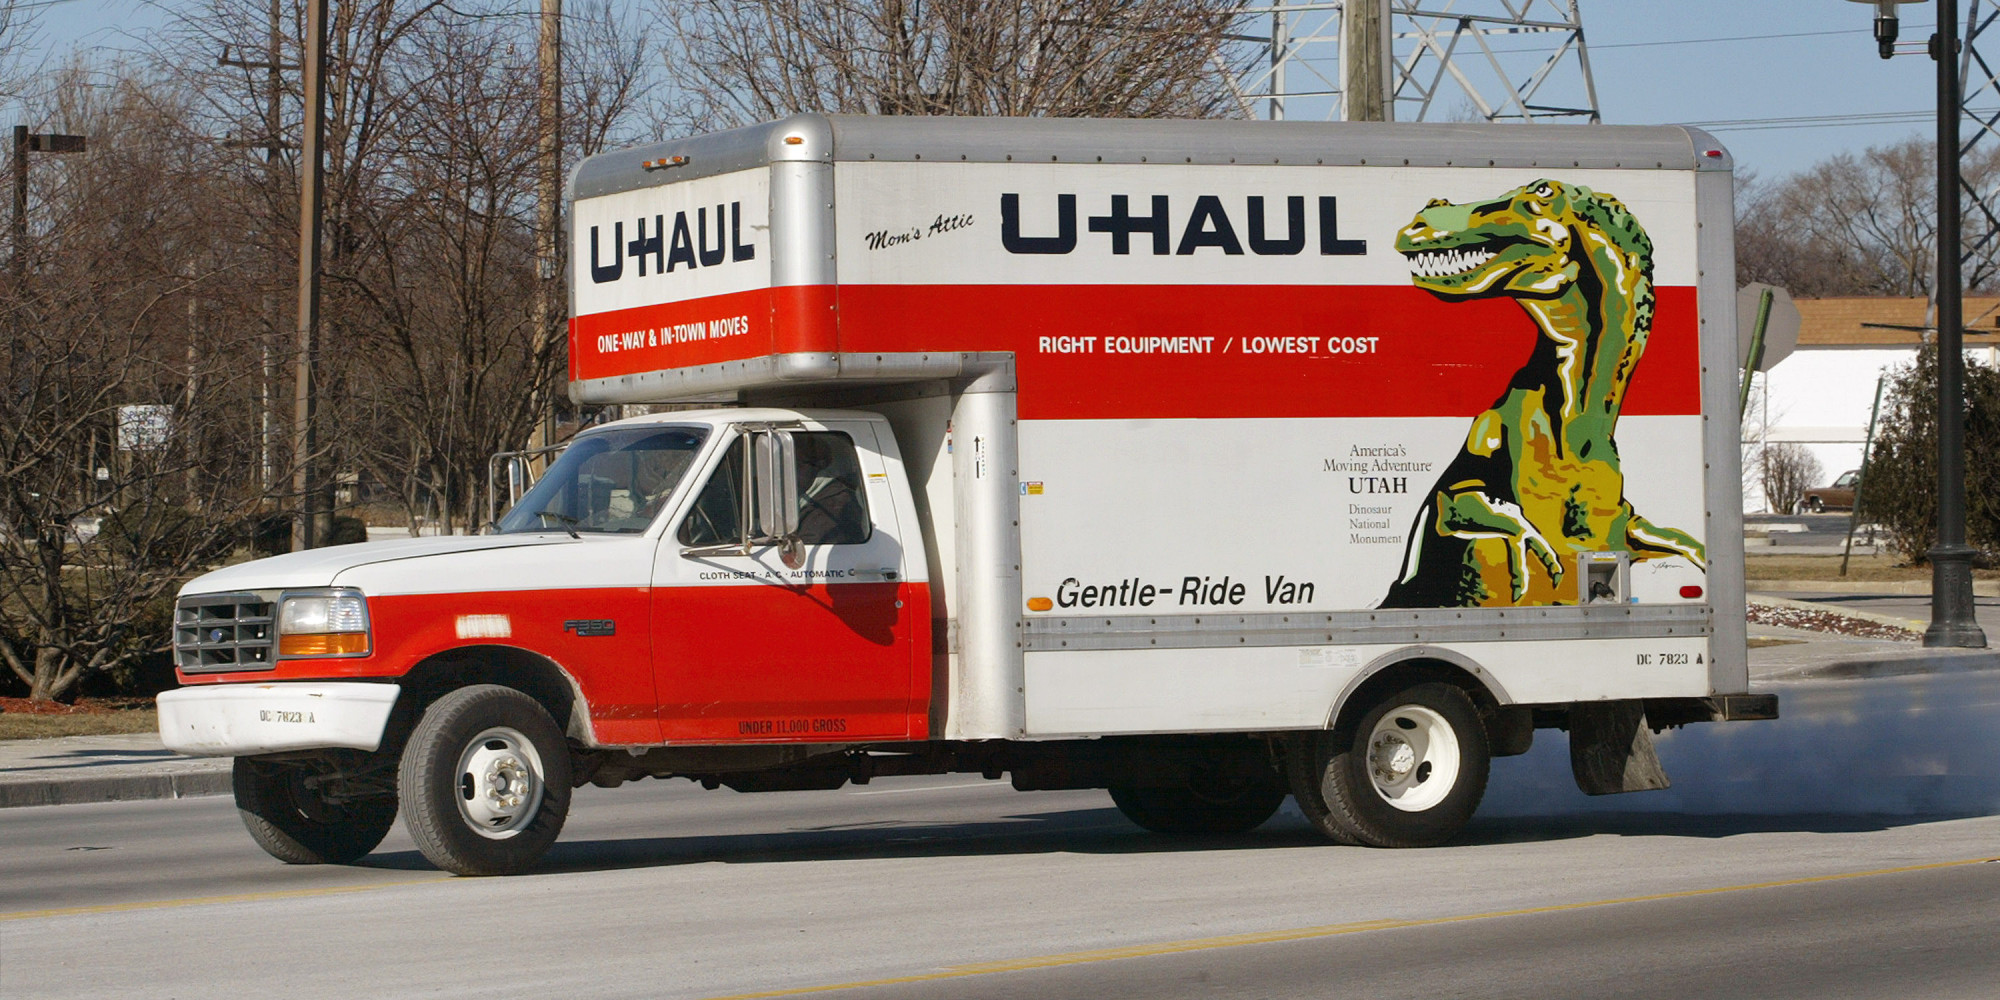 Uhaul - Here S What A Lesbian Shouldn T Bring On A First Date A U Haul Huffpost